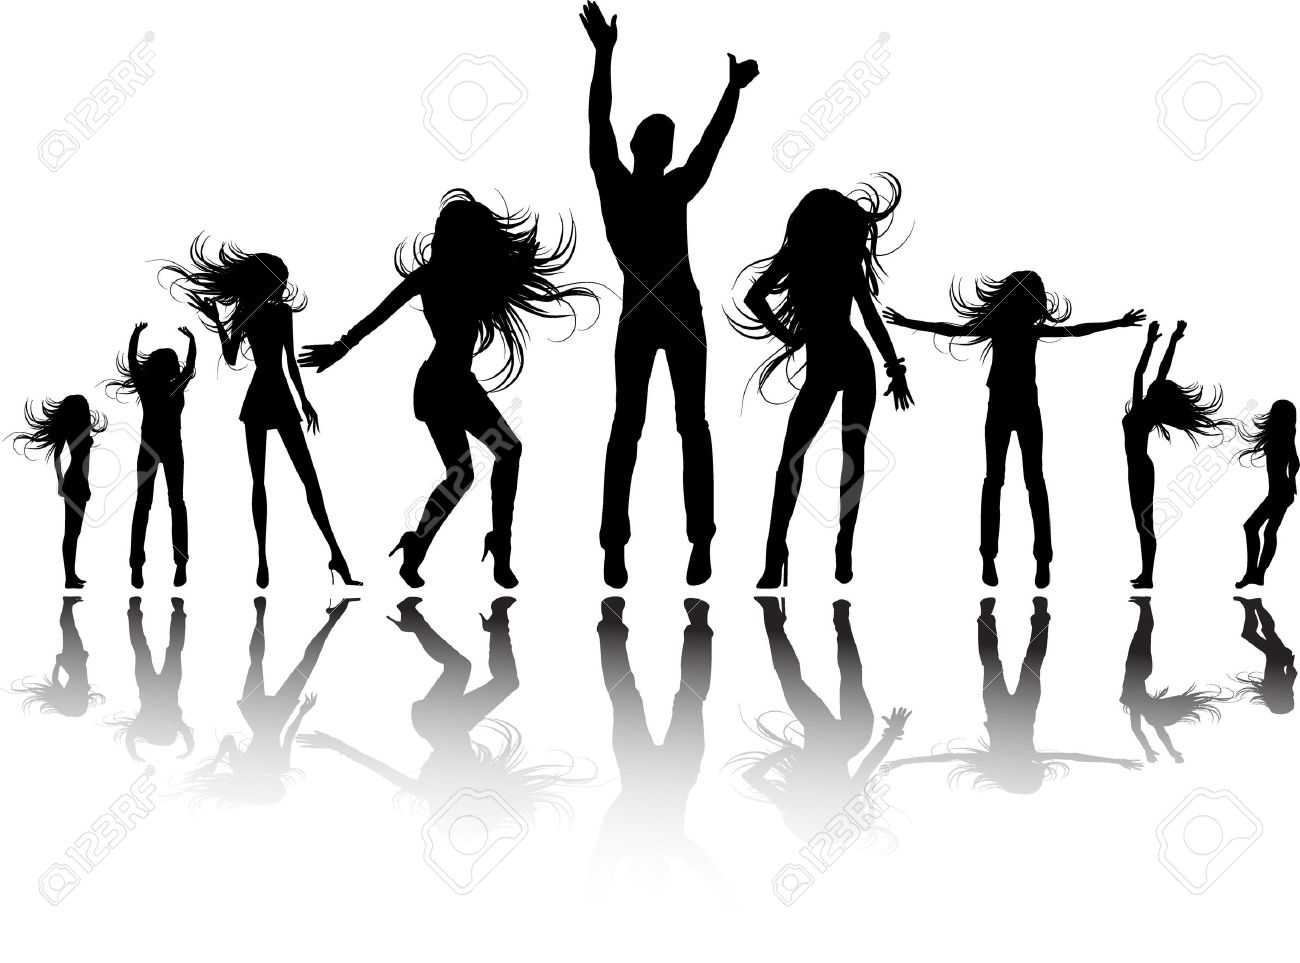 Party Silhouette Vector Free The Vector Party Silhouette